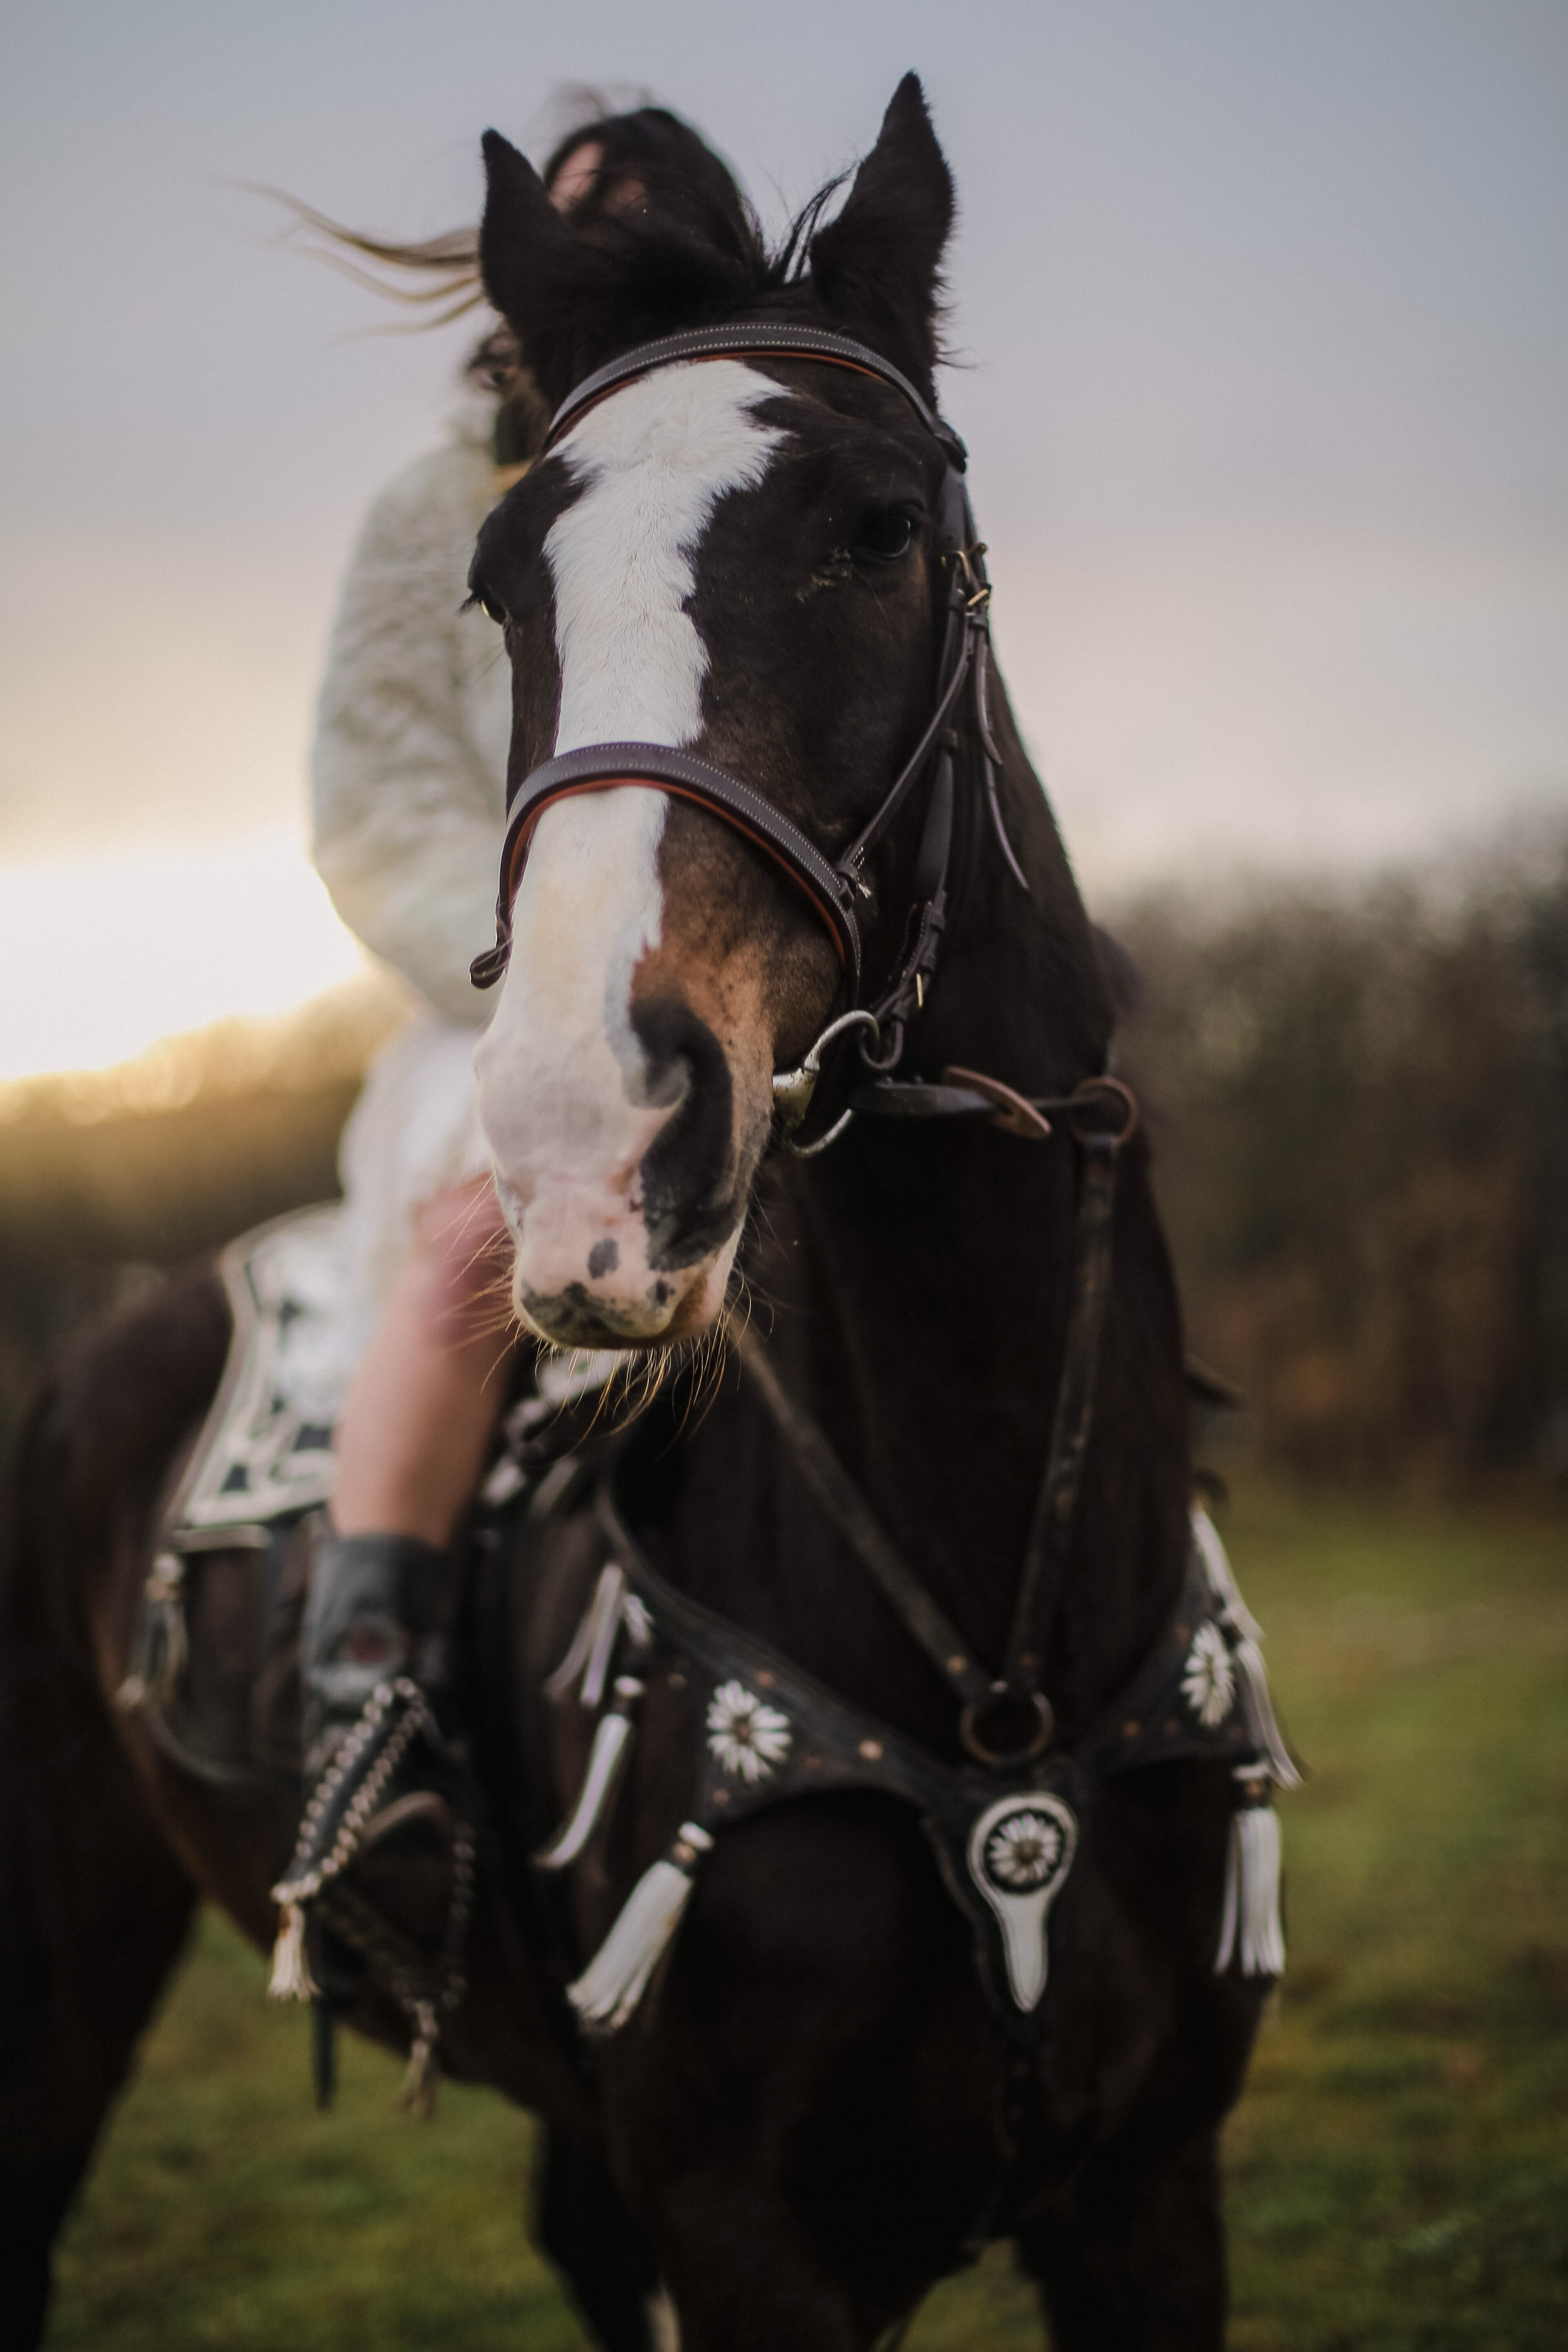 Horseback Riding - Take scenic rides in the High Country through sage meadows, aspen glens and evergreen forests. Mt. Princeton Riding Stables provides a fantastic riding experience. It's also a great way to see the fall colors.